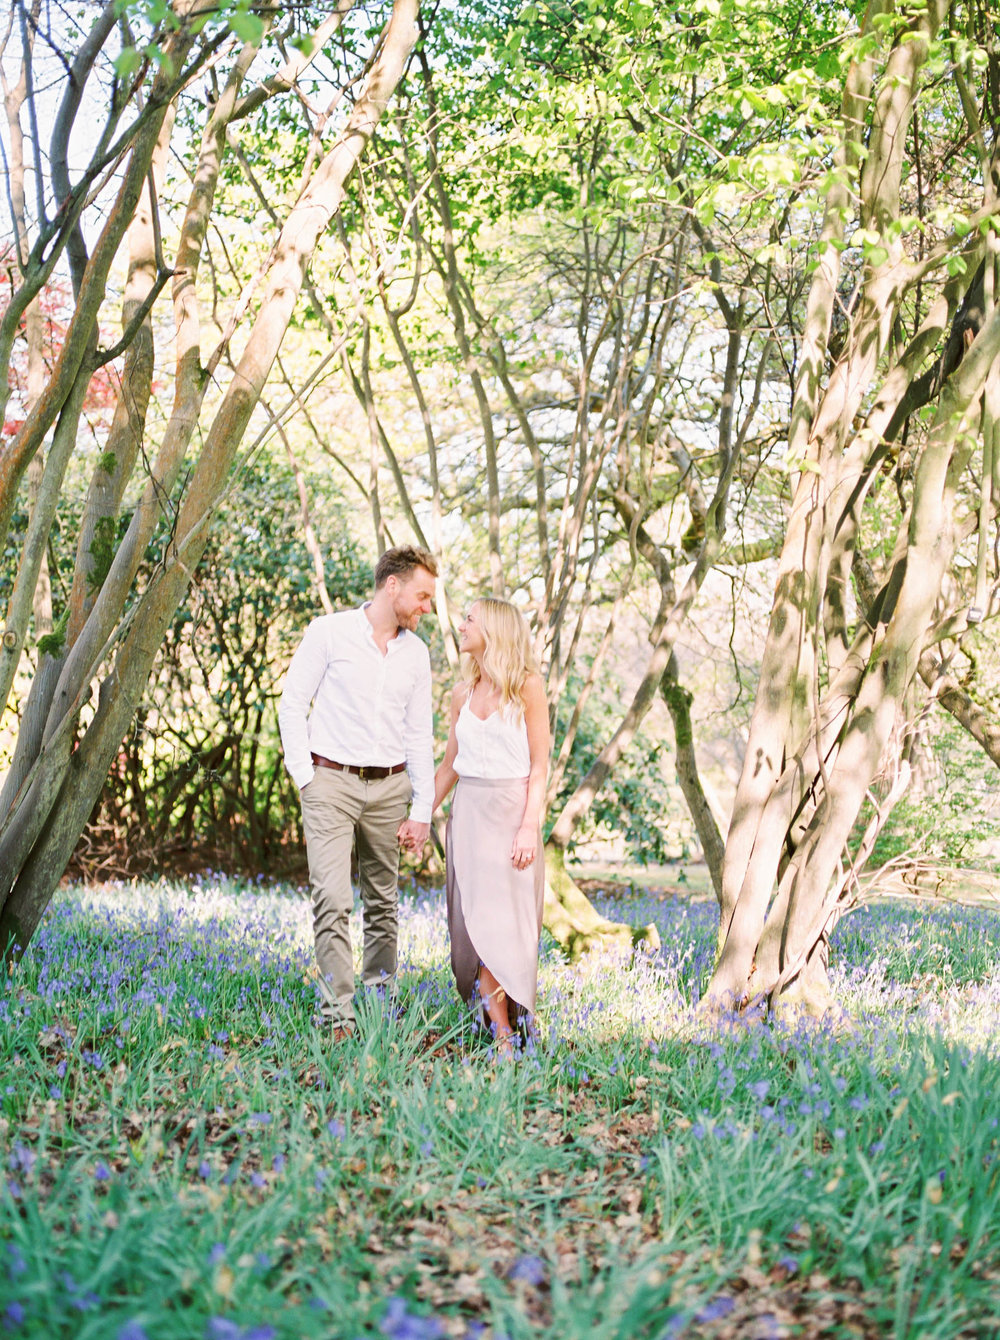 Amy O'Boyle Photography- Destination & UK Fine Art Film Wedding Photographer- Sheffield Park Garden National Trust Spring Engagement Shoot-19.jpg